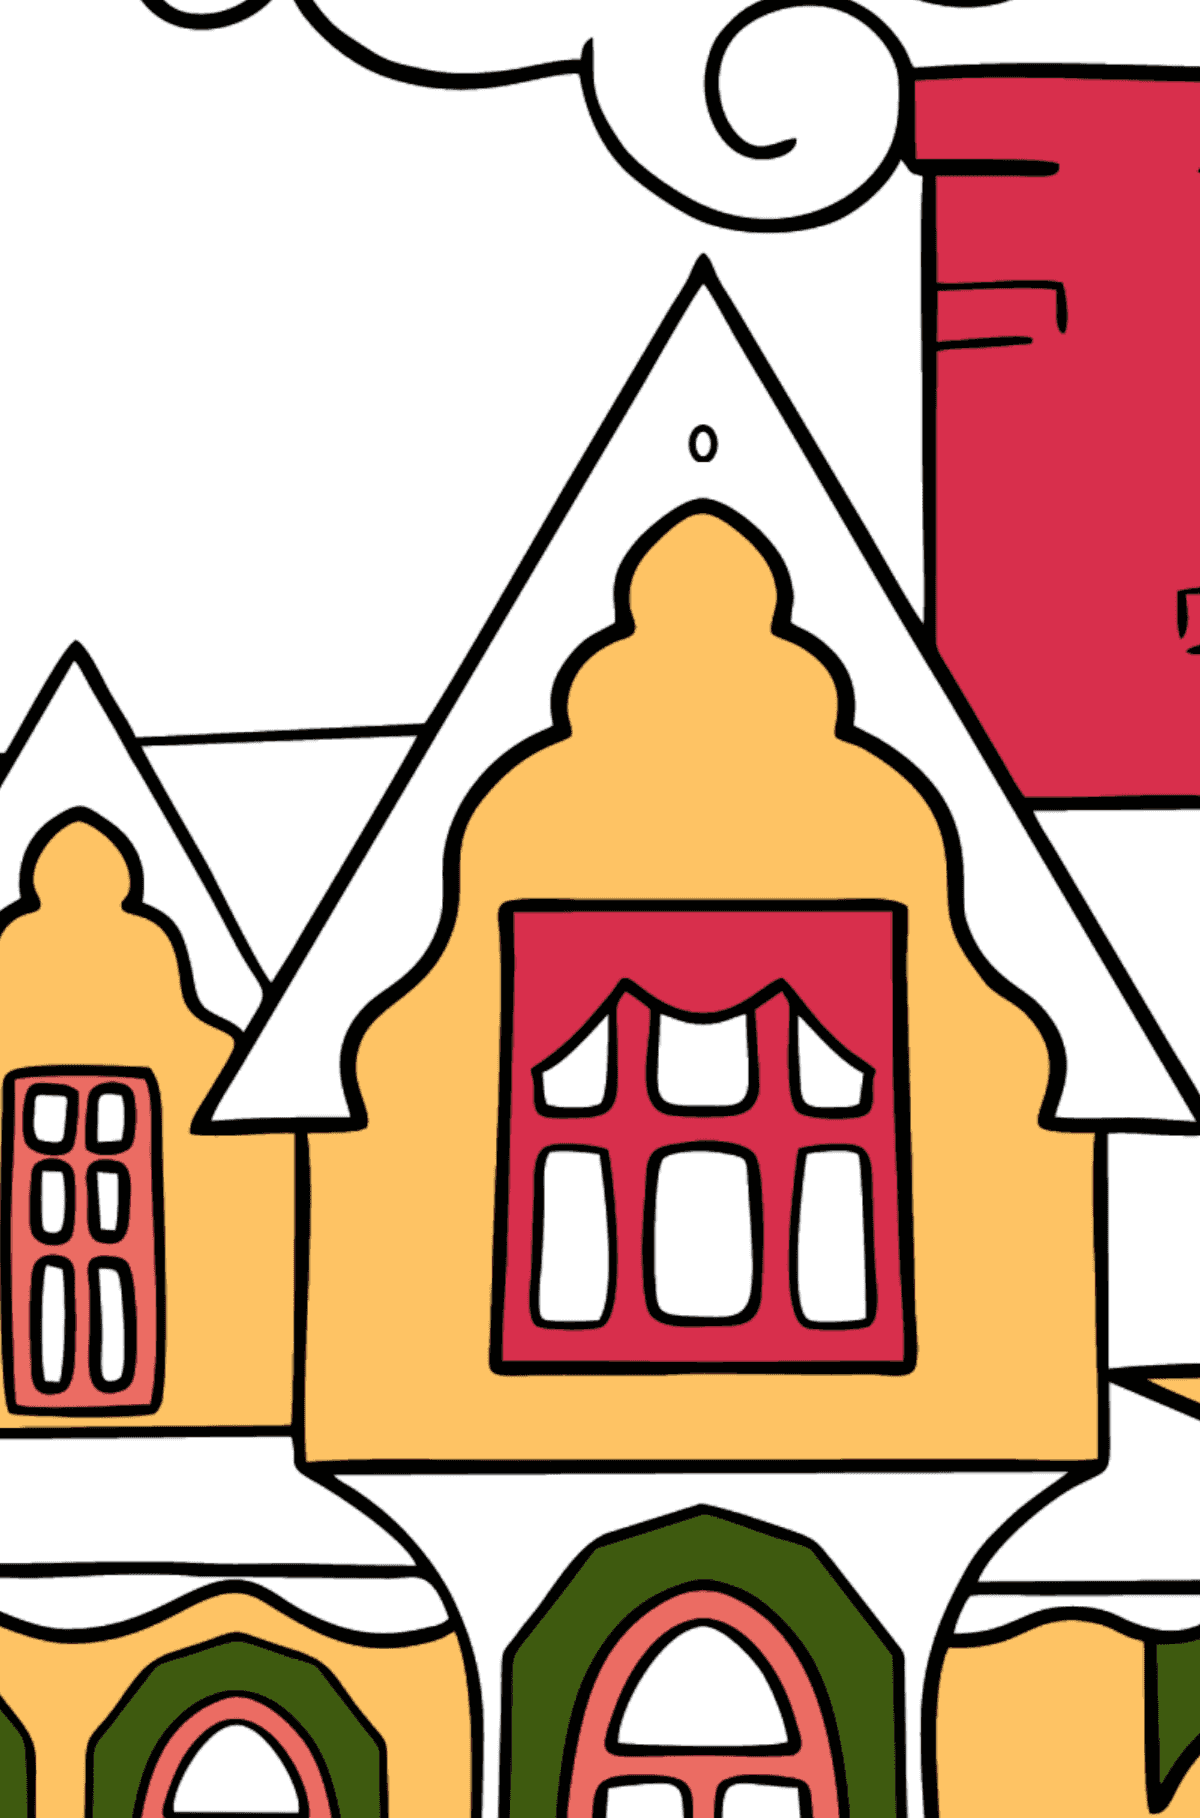 Simple Coloring Page - A Miraculous House - Coloring by Symbols and Geometric Shapes for Kids